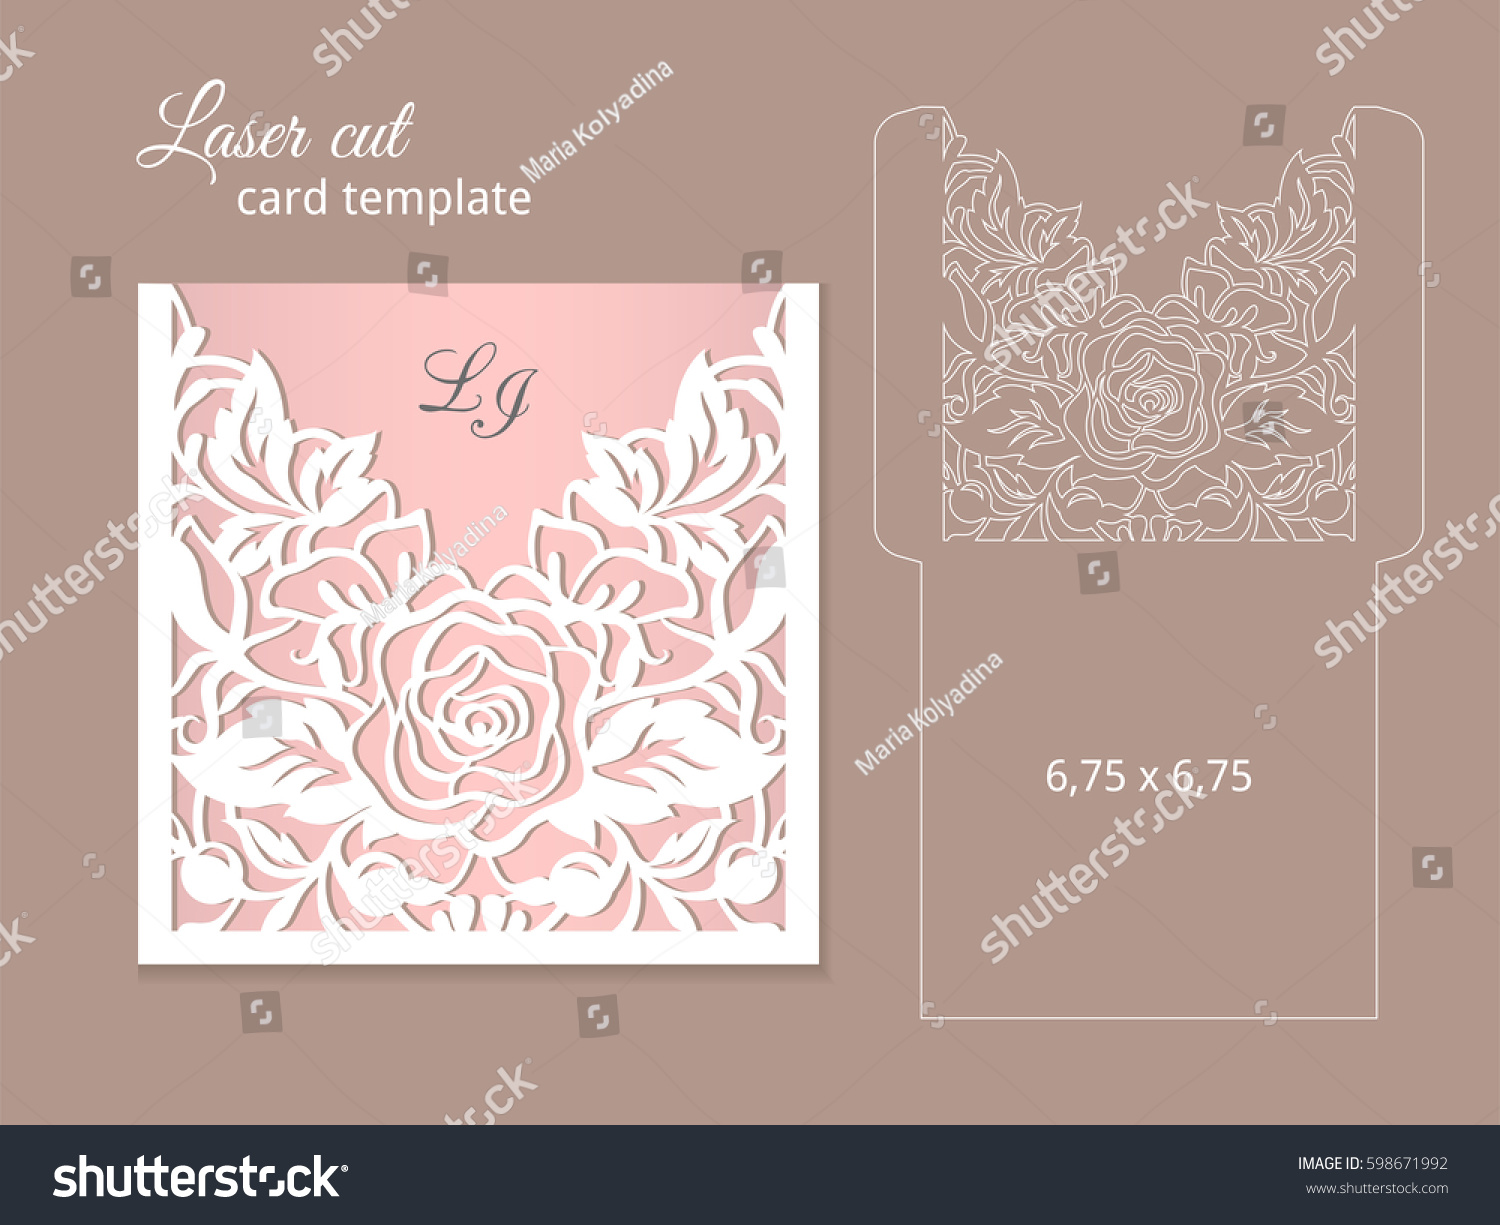 Laser cut invitation card template wedding em vetor stock 598671992 laser cut invitation card template wedding invitation template for laser cutting or die cutting stopboris